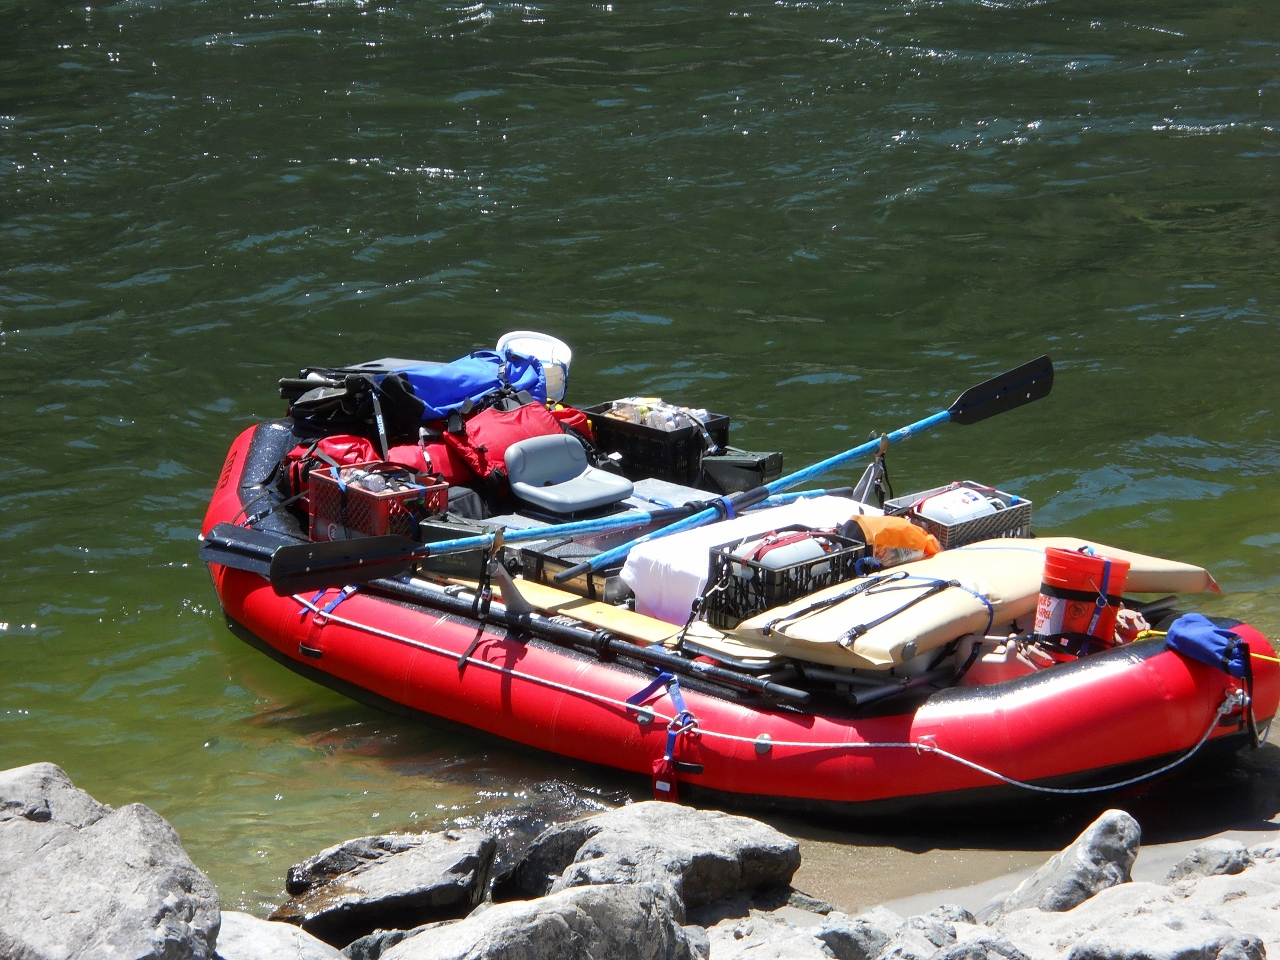 Click image for larger version  Name:The Gear Boat 2.jpg Views:462 Size:818.9 KB ID:6800